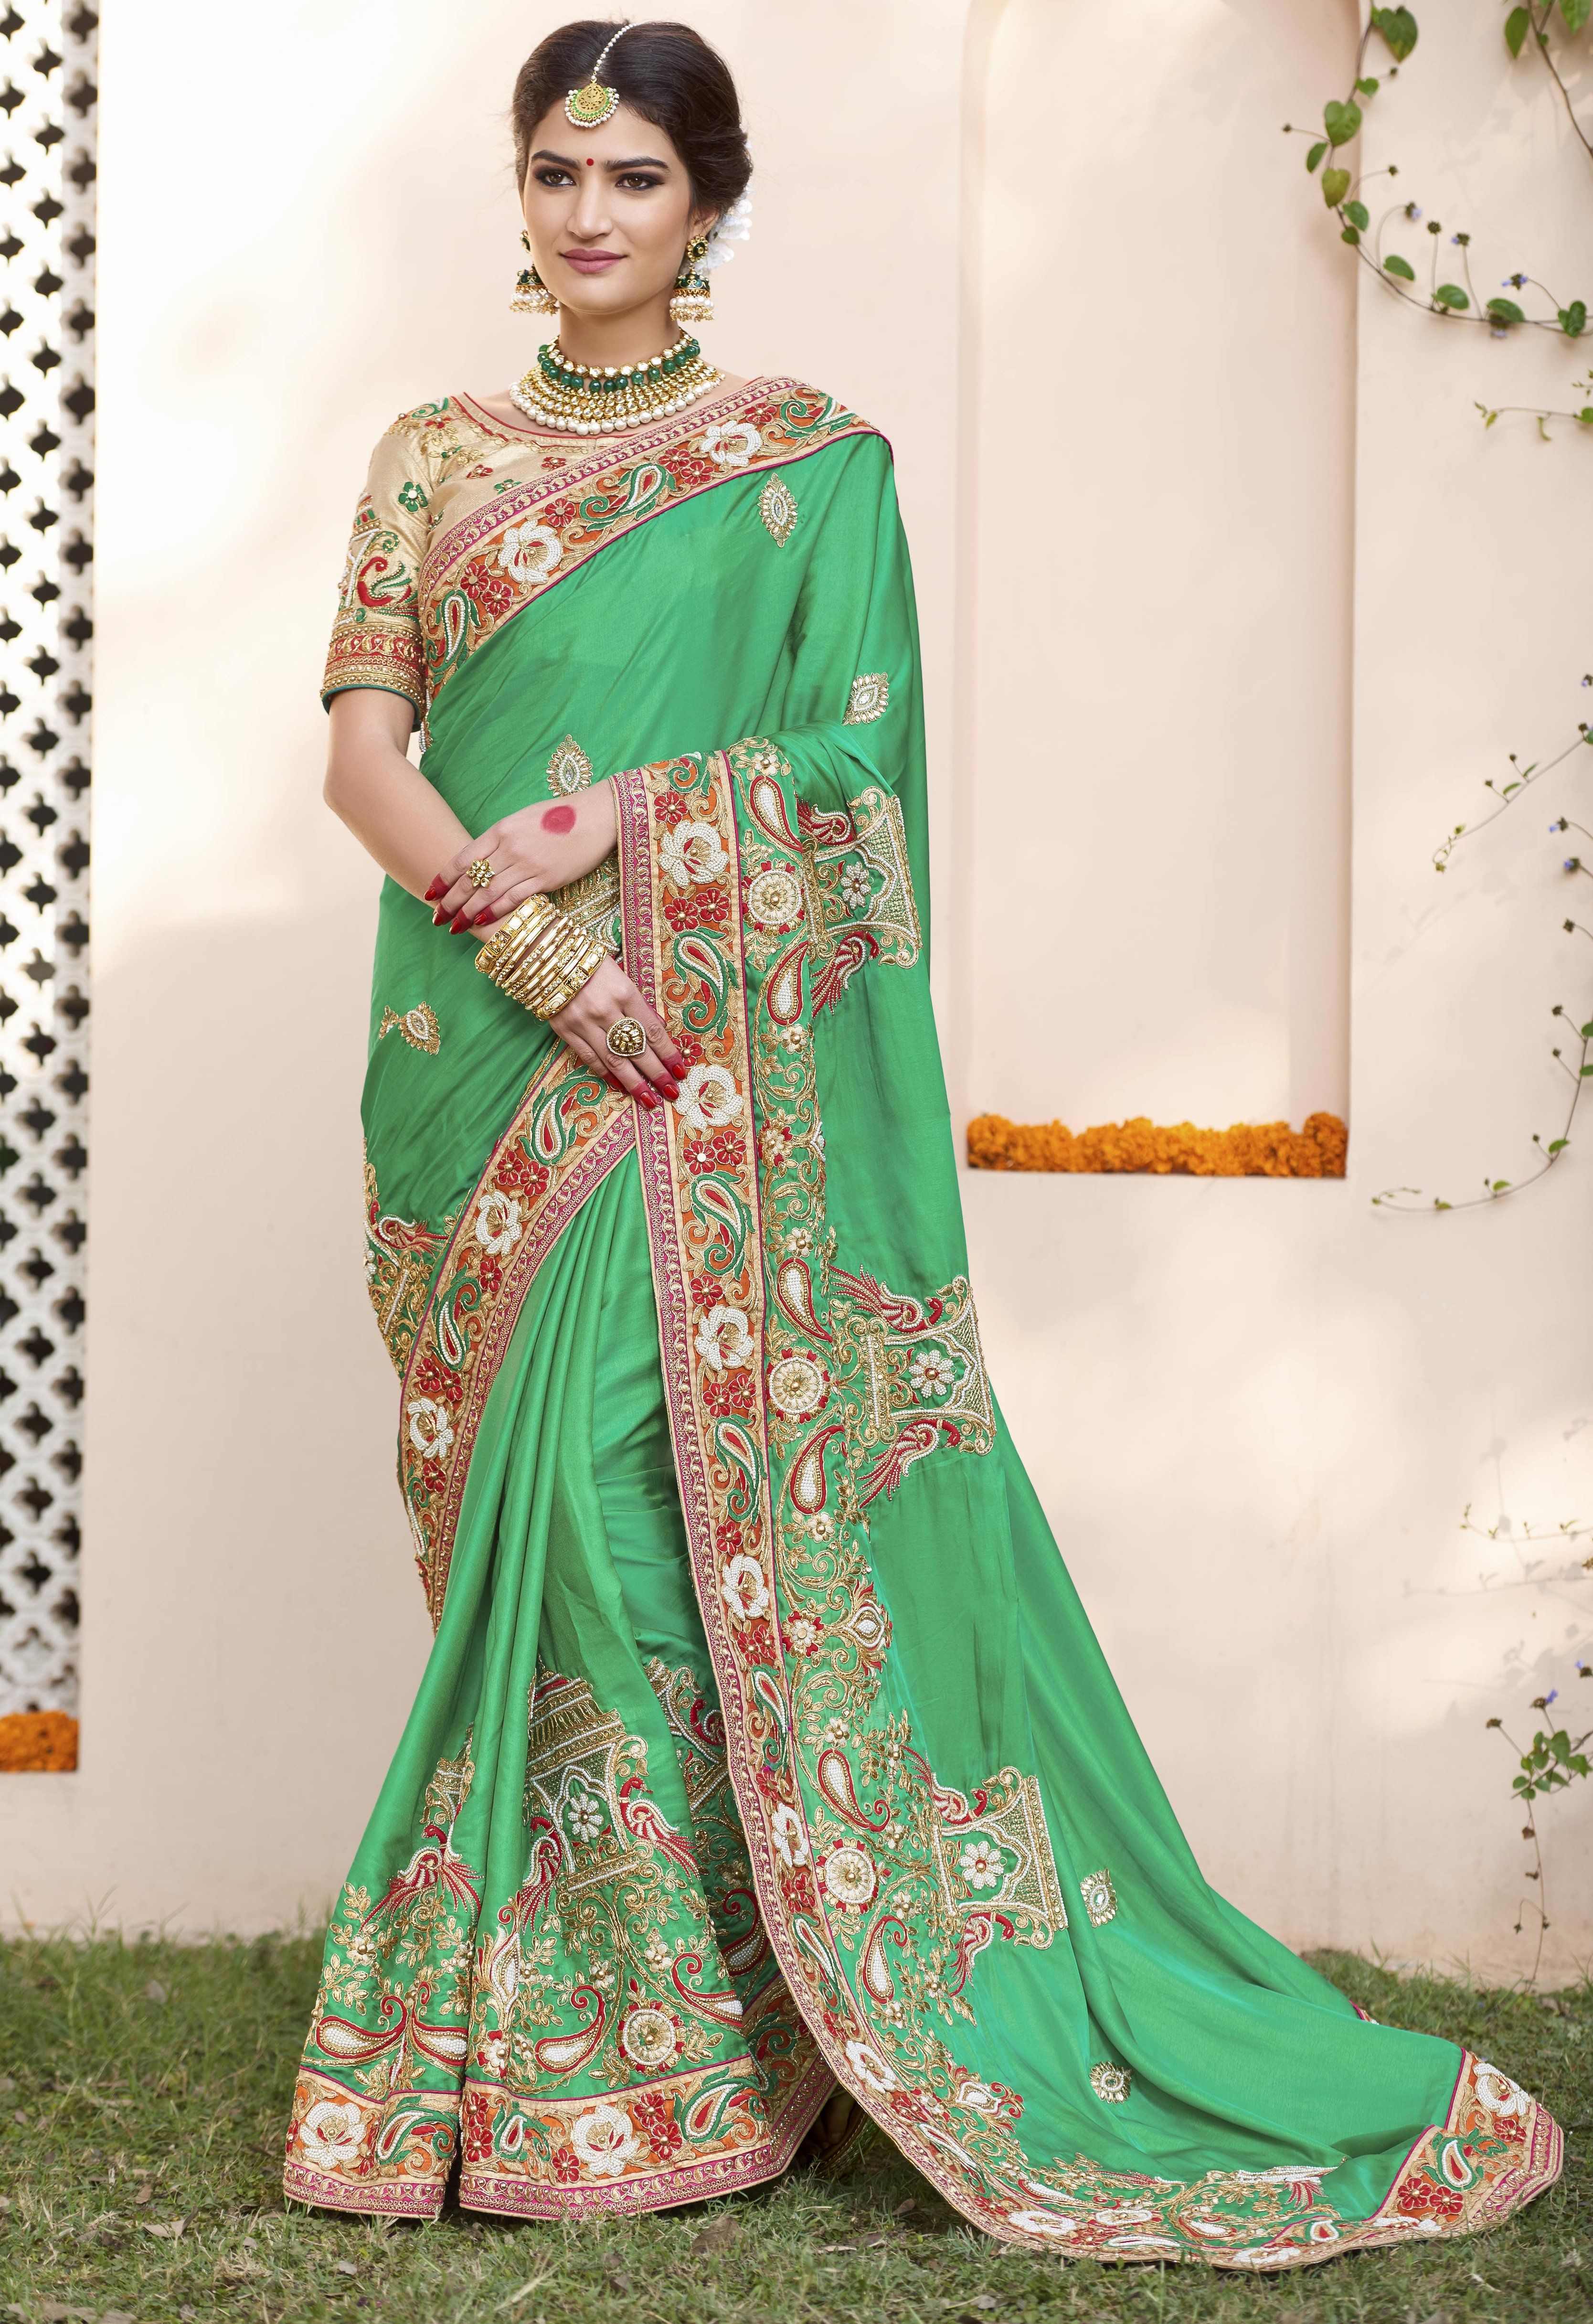 Green Zari Embroidered, Moti Work, Thread EmbroideredFaux Georgettesaree Category : Saree Saree Fabric : Faux Georgette Blouse Fabric : Raw Silk Work : Zari Embroidered, Moti Work, Thread Embroidered Color : Green Size :6.3(5.5 Saree 0.8 blouse ) Style : Wedding saree Remark : Dry clean only